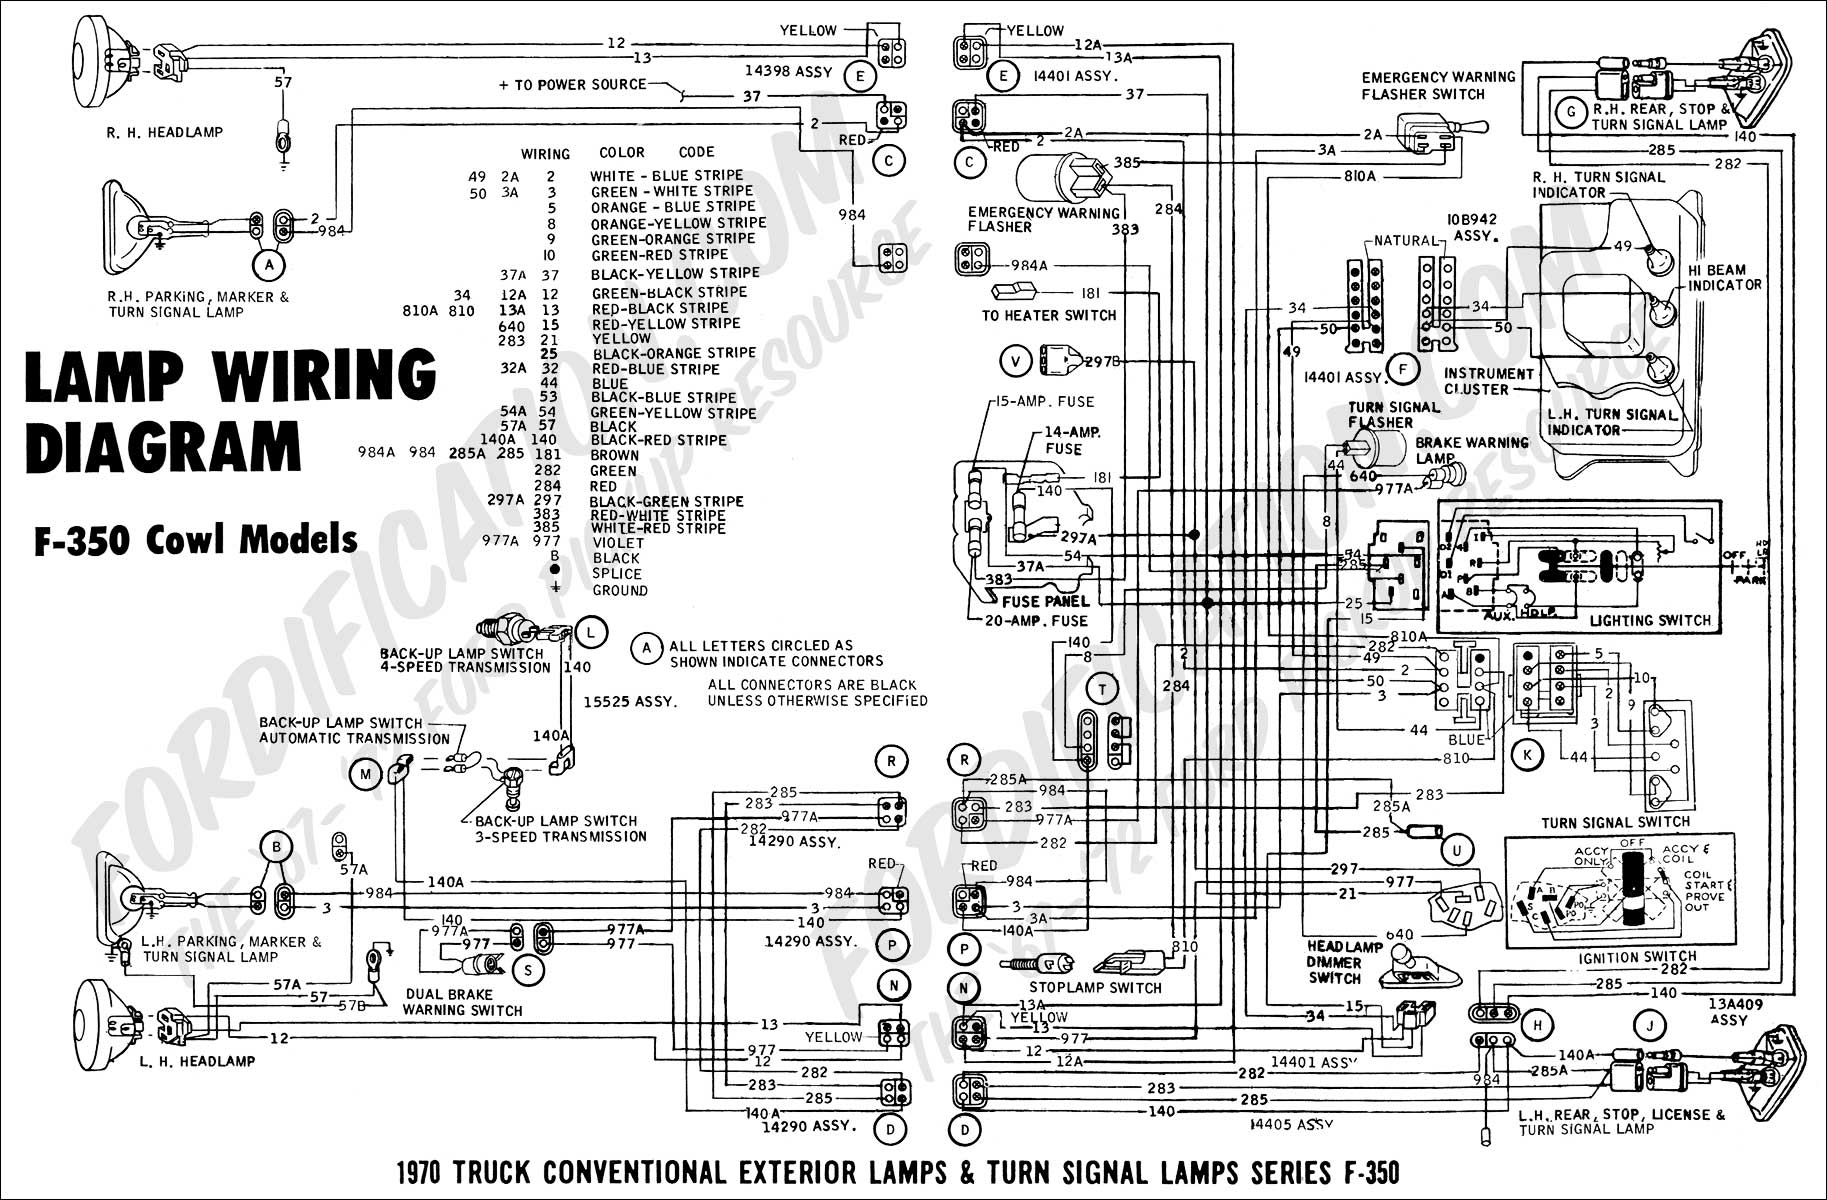 hight resolution of 2008 f250 wiring diagram wiring diagram blog 2008 f250 fog lamps wiring diagram 2008 f250 wiring diagram